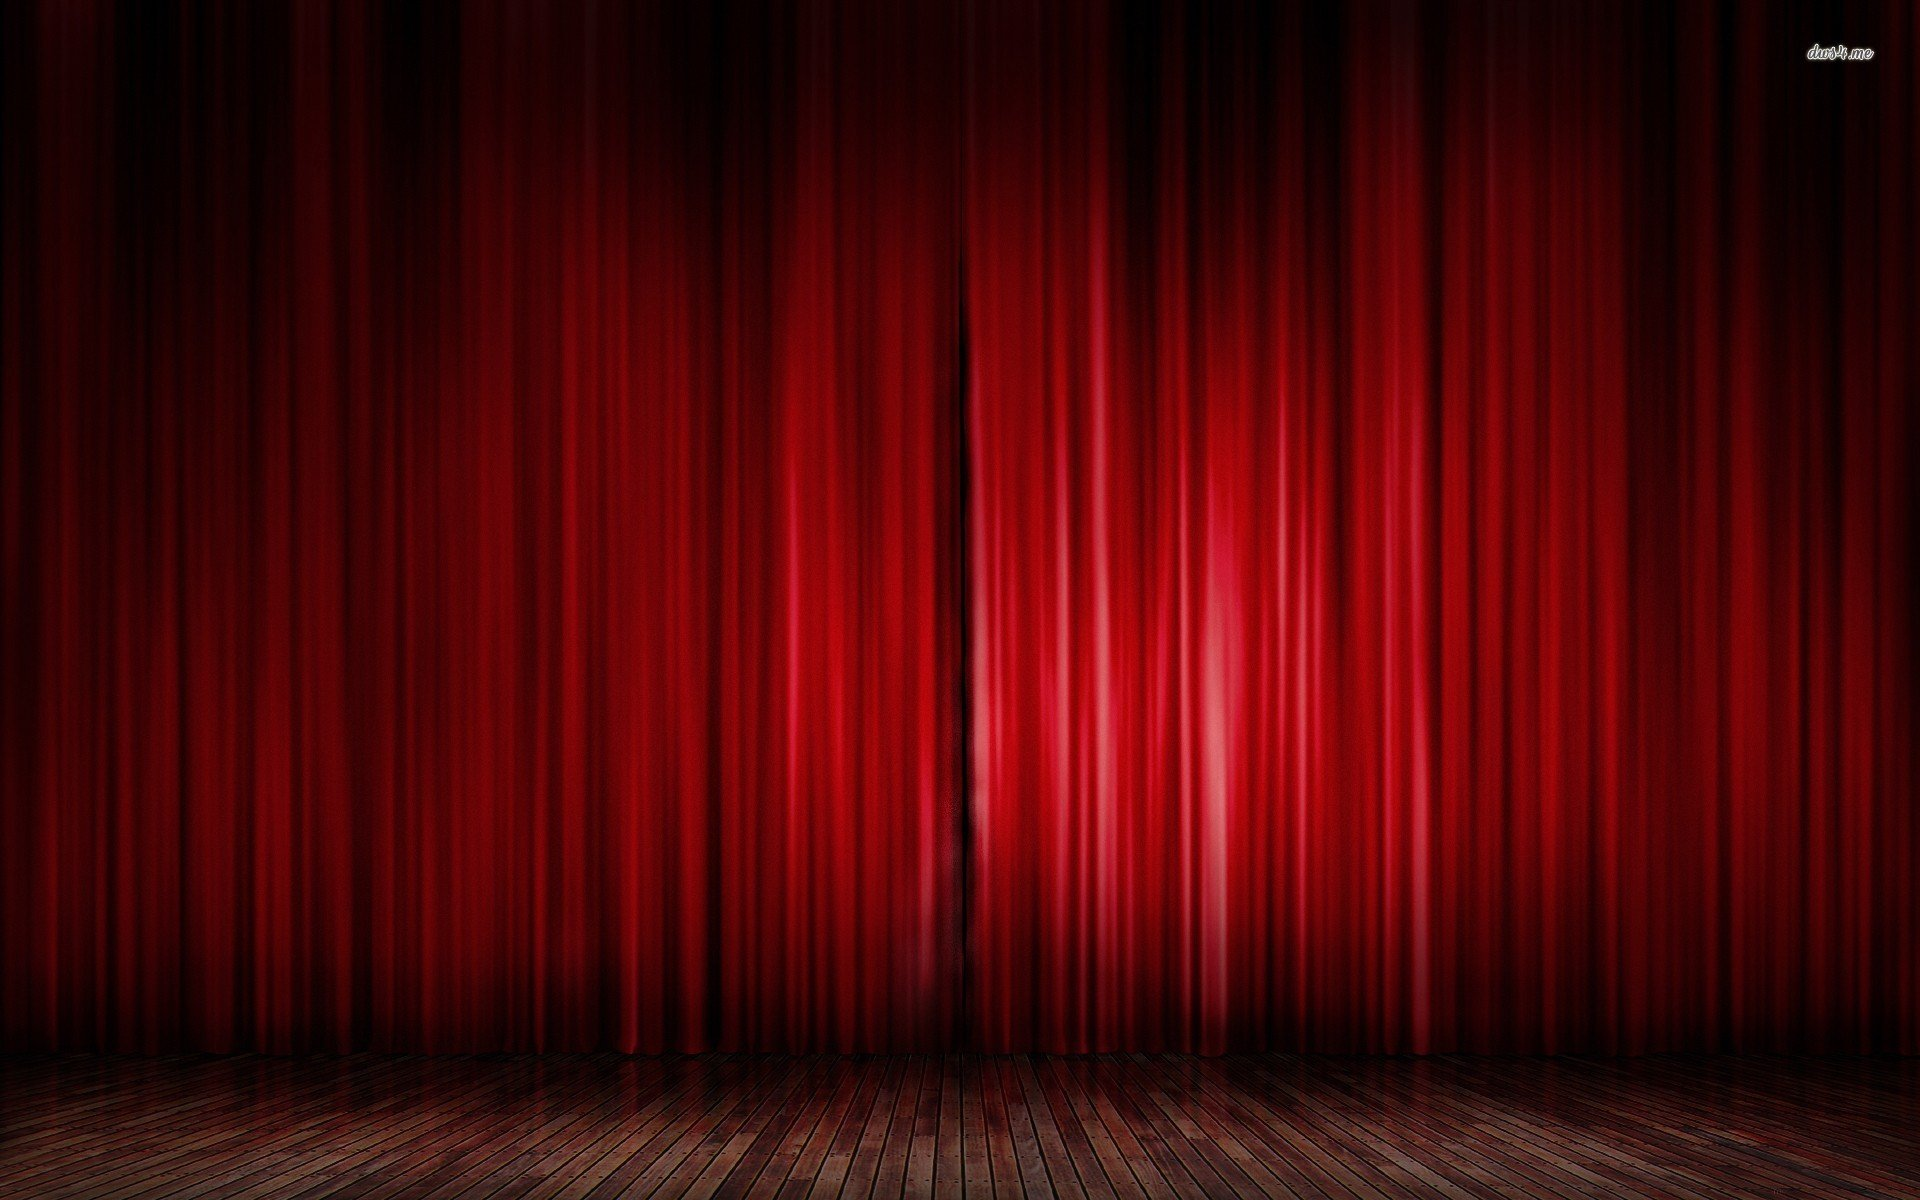 Blue stage curtains blue stage curtain vector free vector in - Stage Curtain Background Free Image Blue